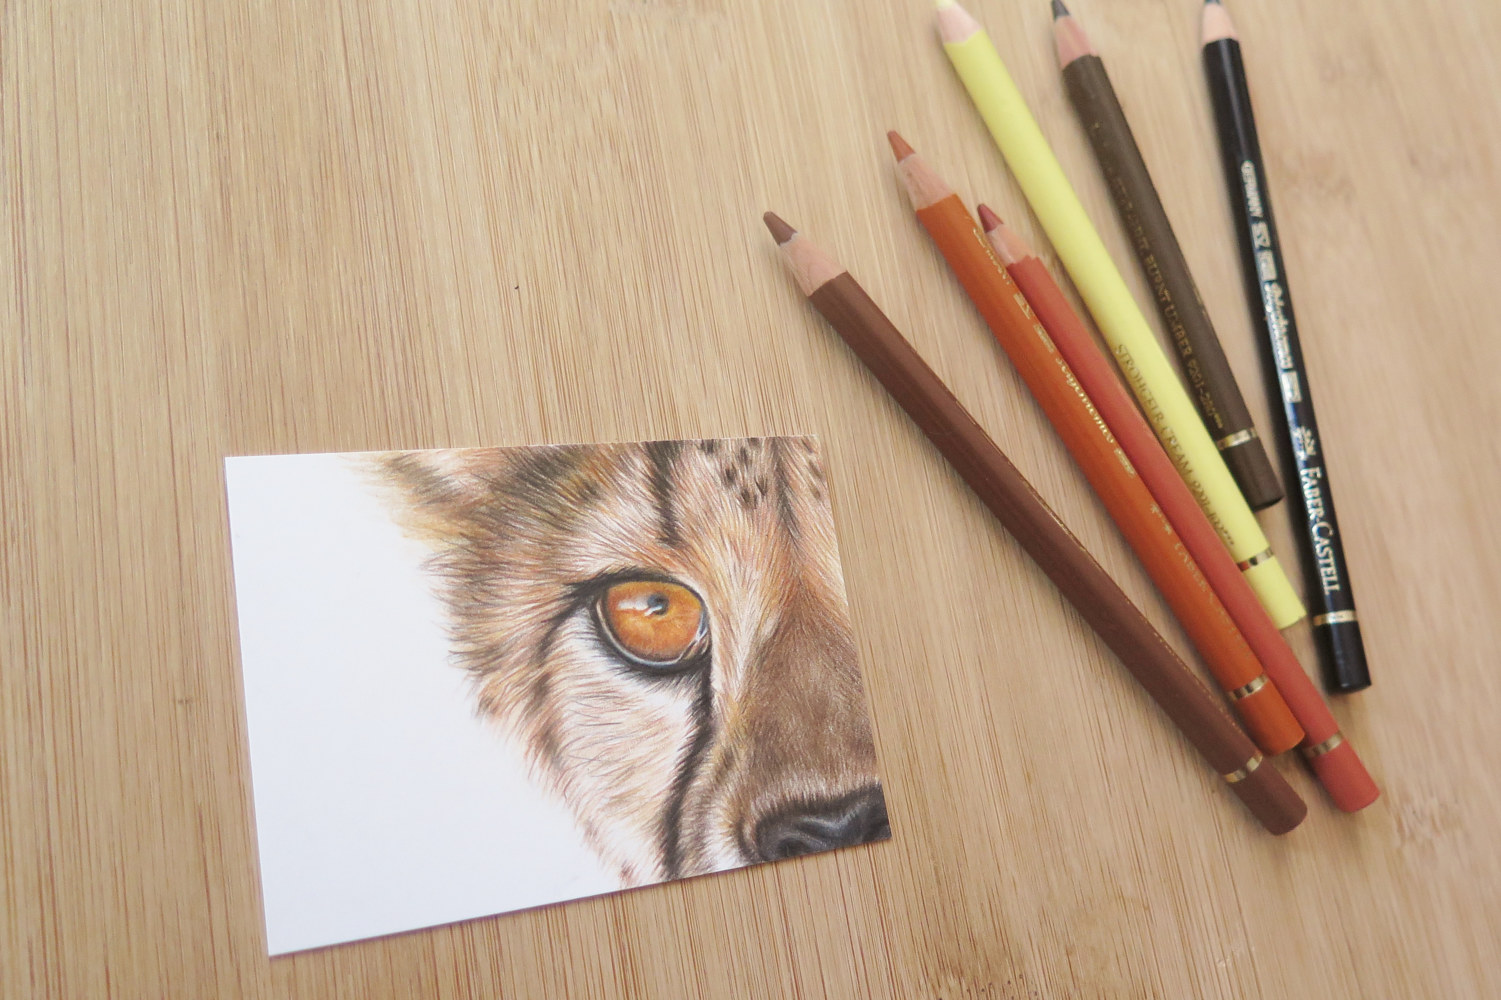 Dessin miniature ACEO - Guépard by Genevieve Desy